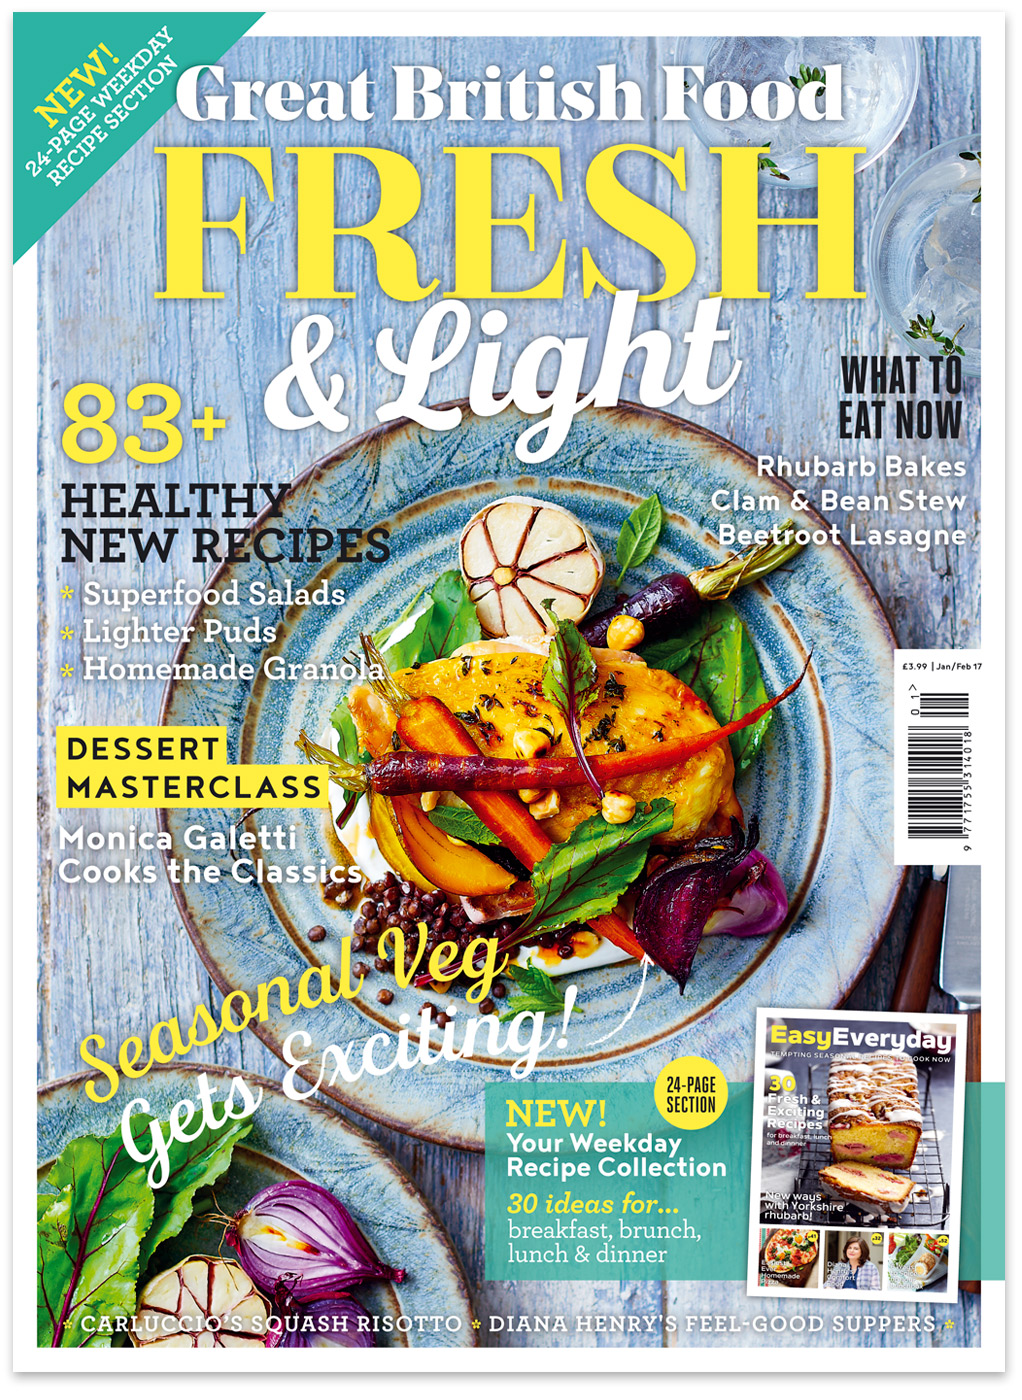 Great British Food Jan/Feb 17 cover by CliQQ Photography